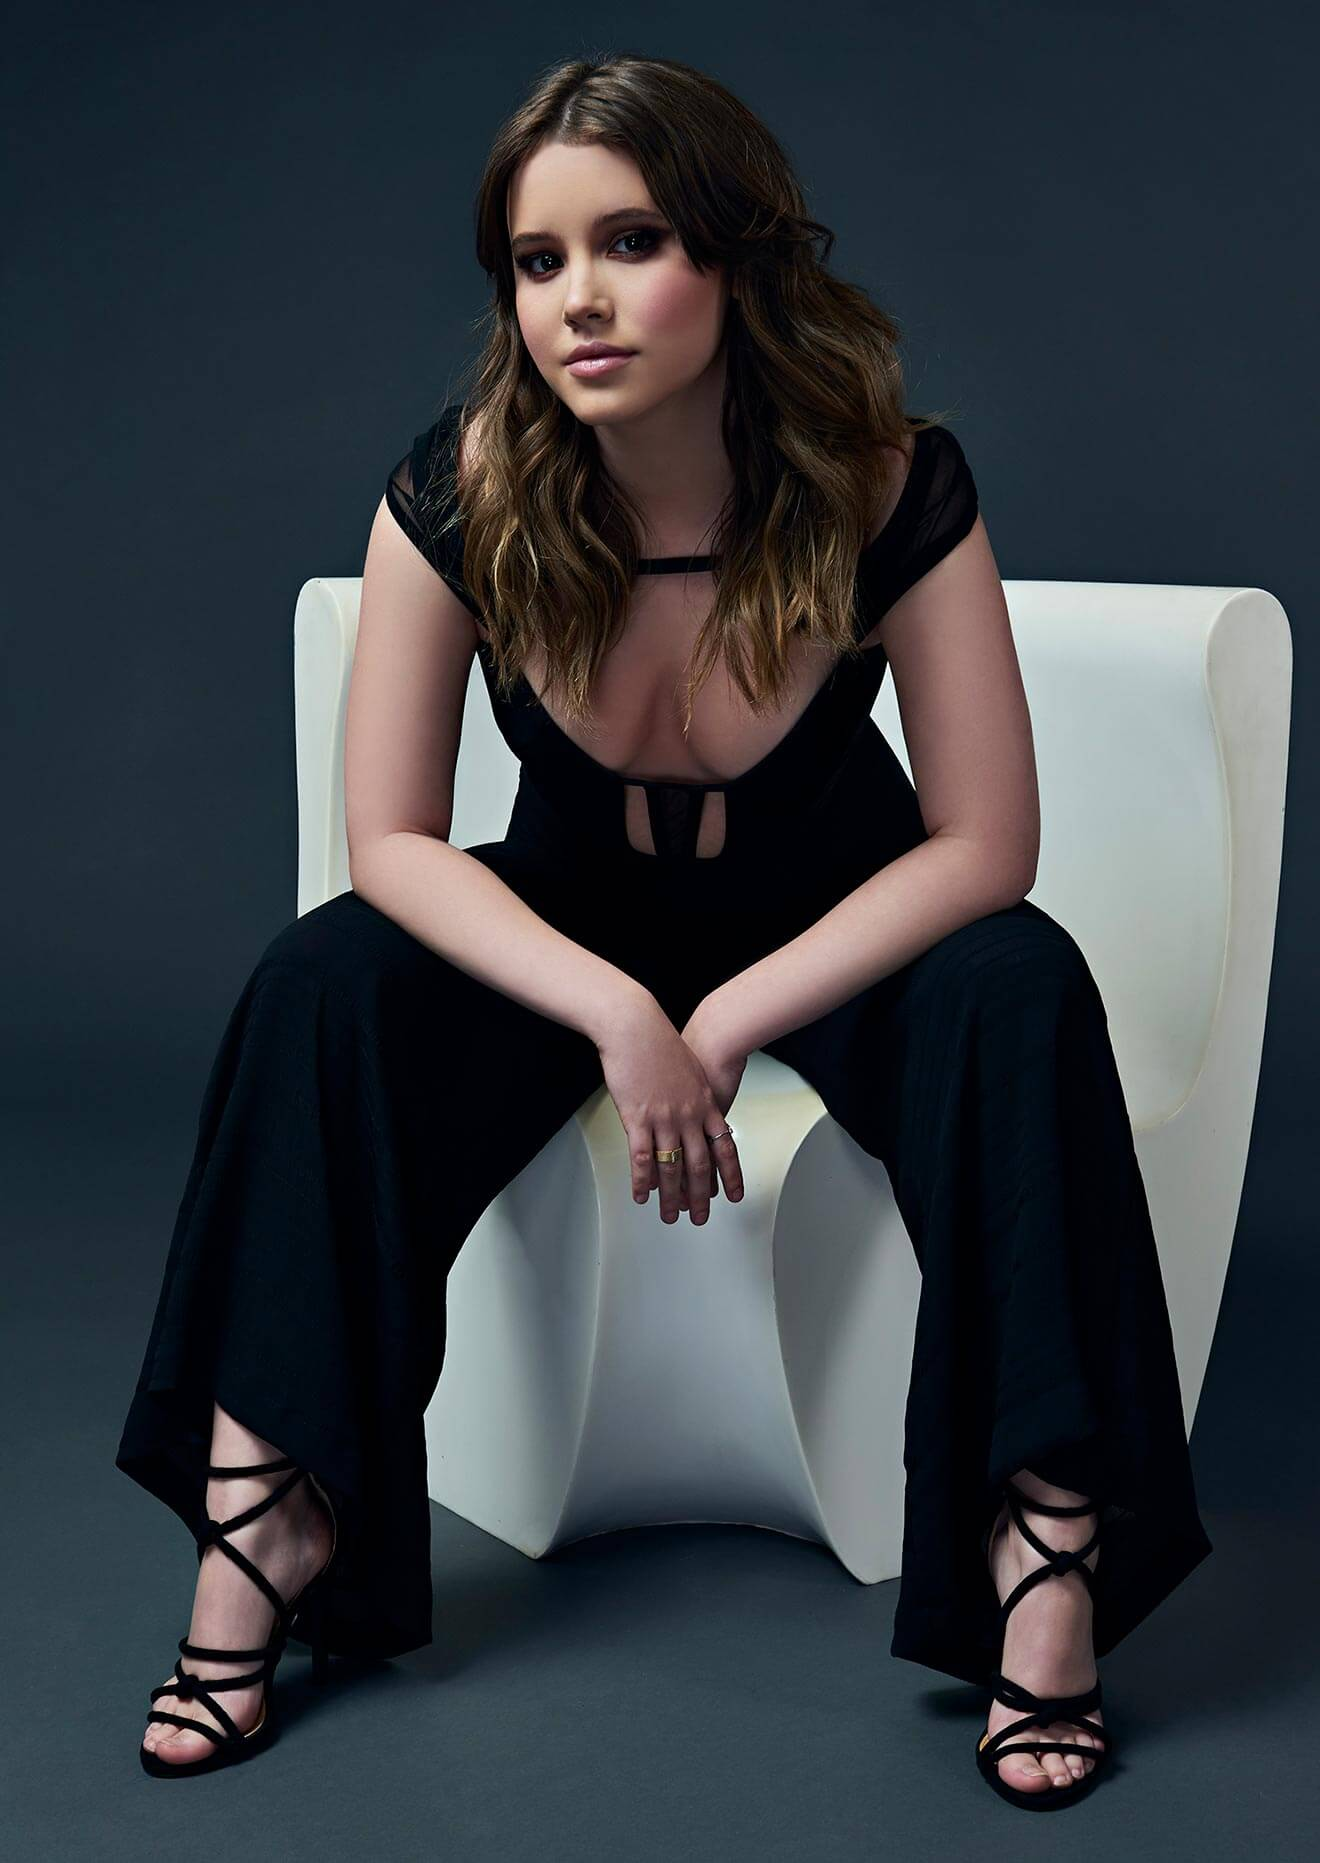 Chillin' with Taylor Spreitler, chair pose